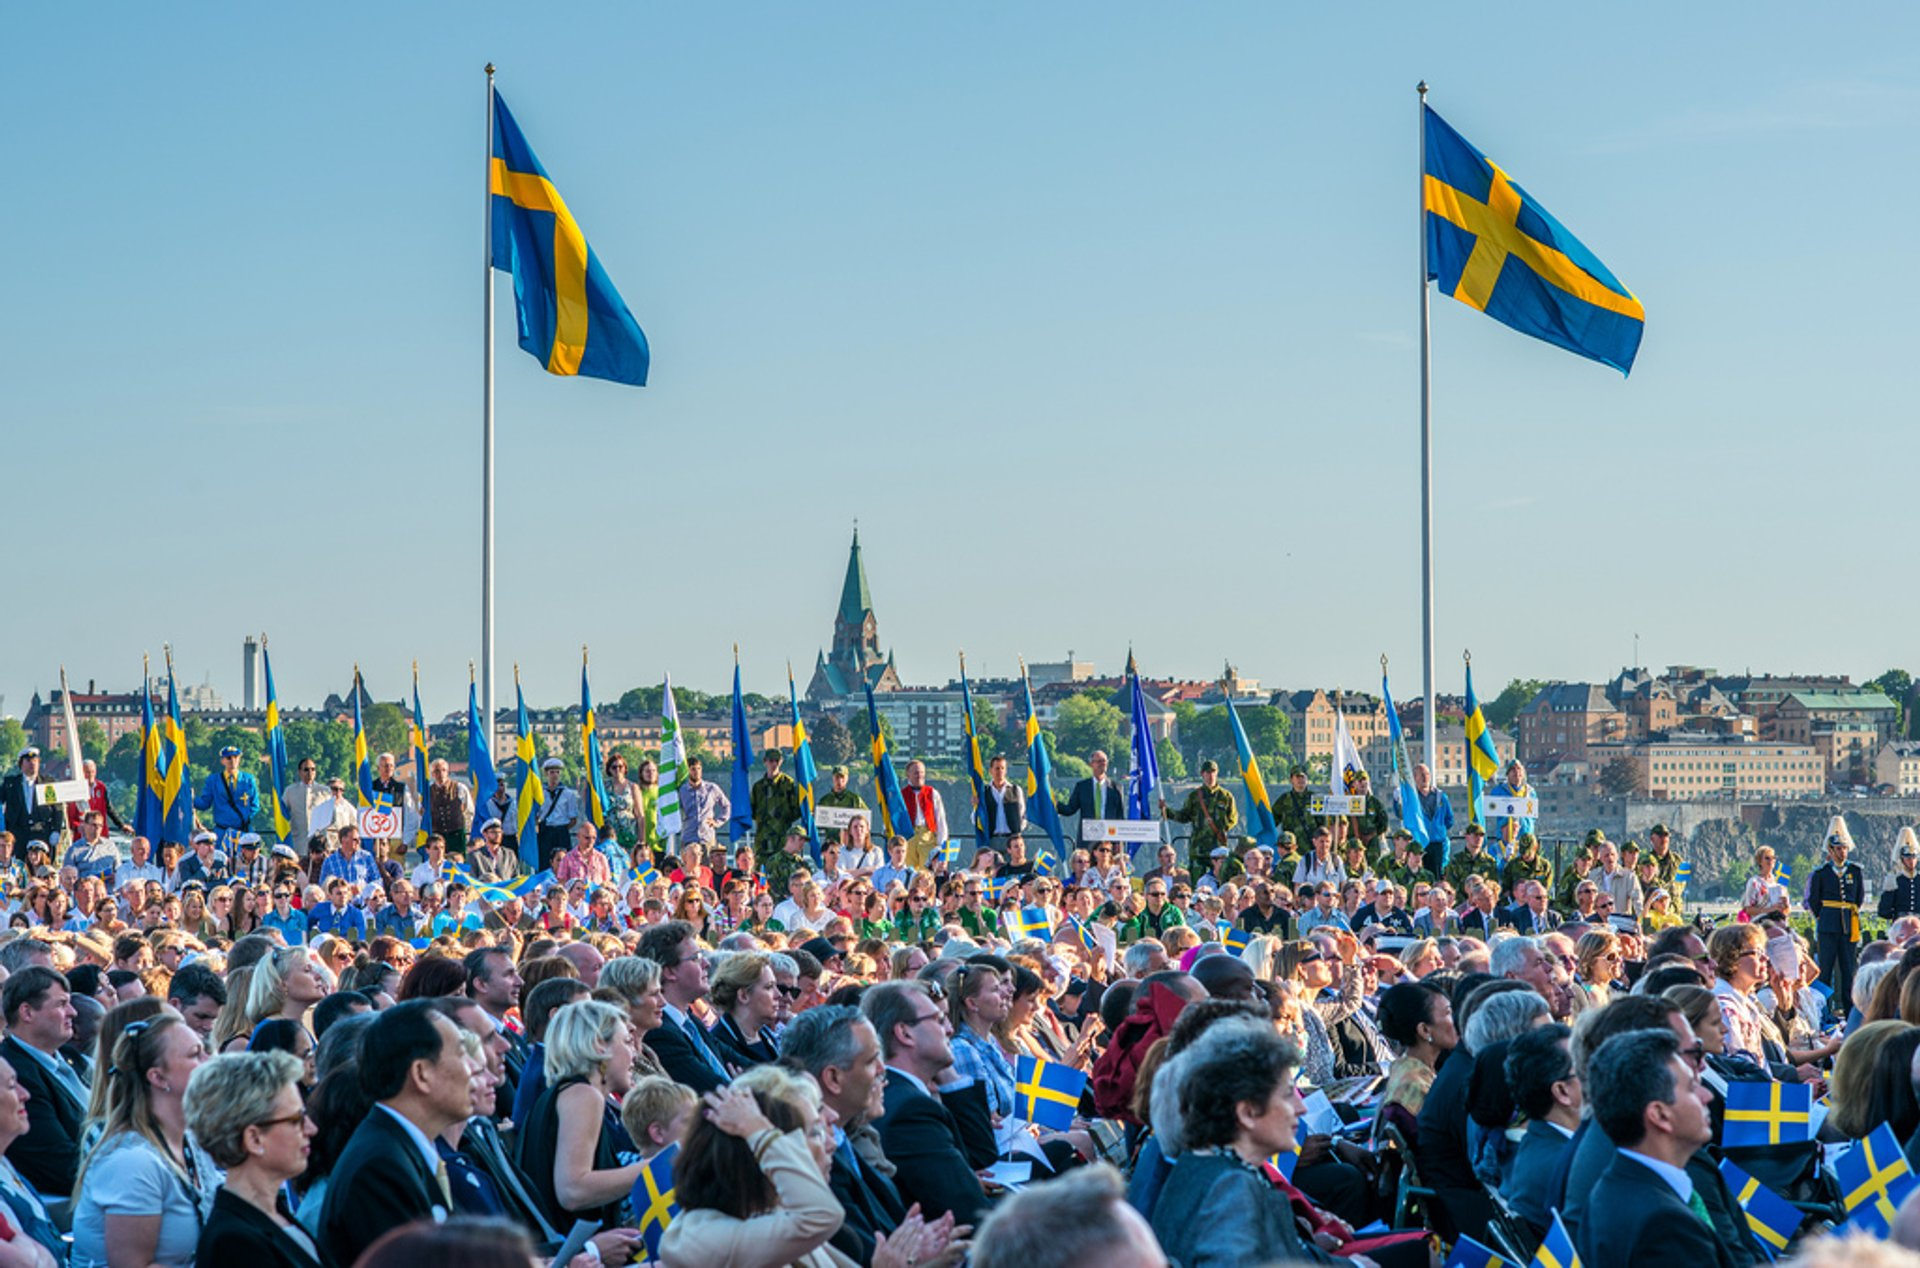 National Day in Sweden - Best Season 2020